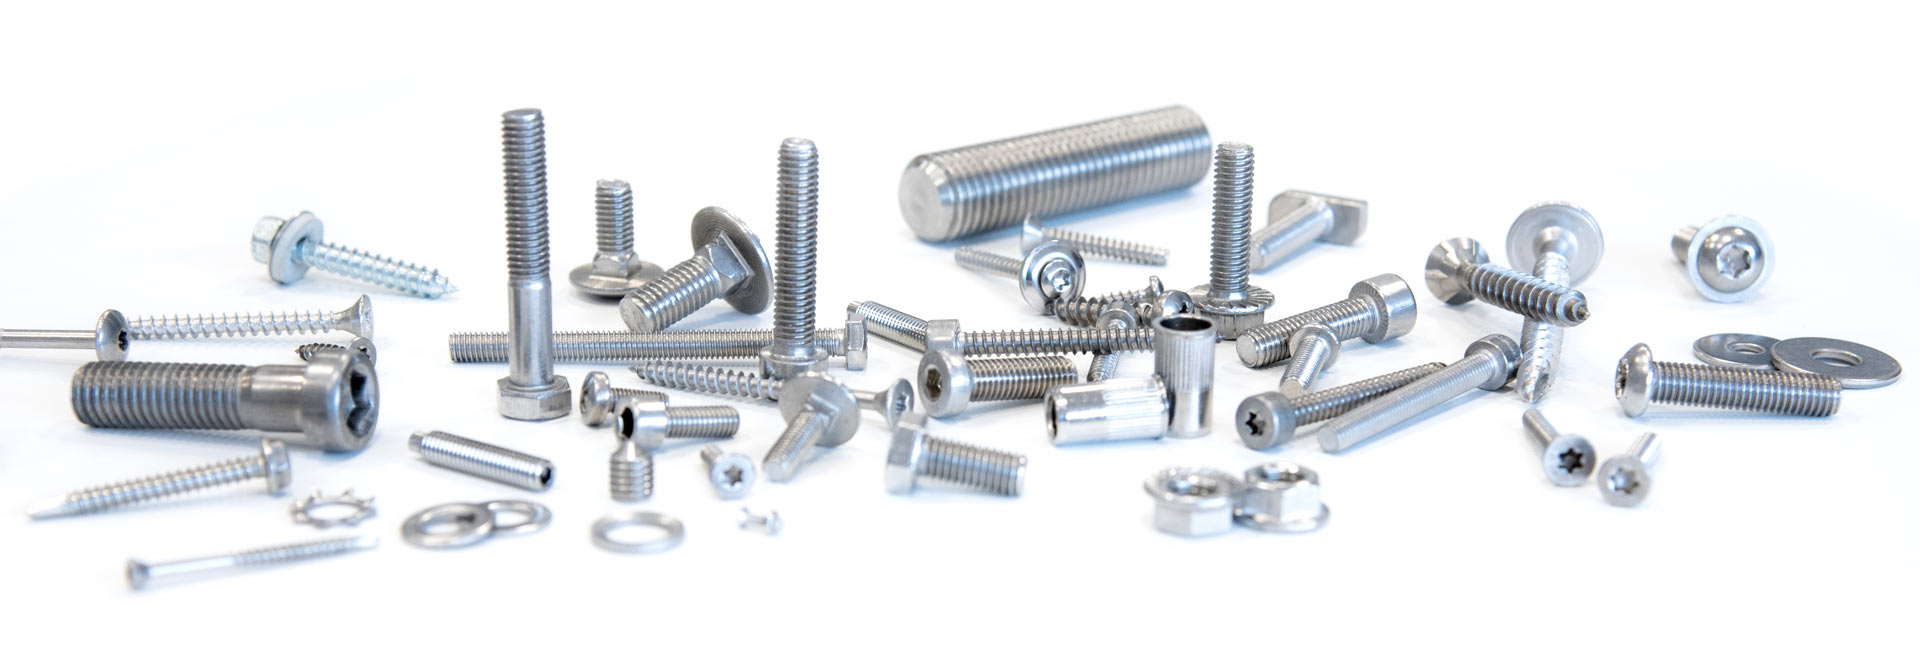 Possible applications of A4 V4A stainless steel screws